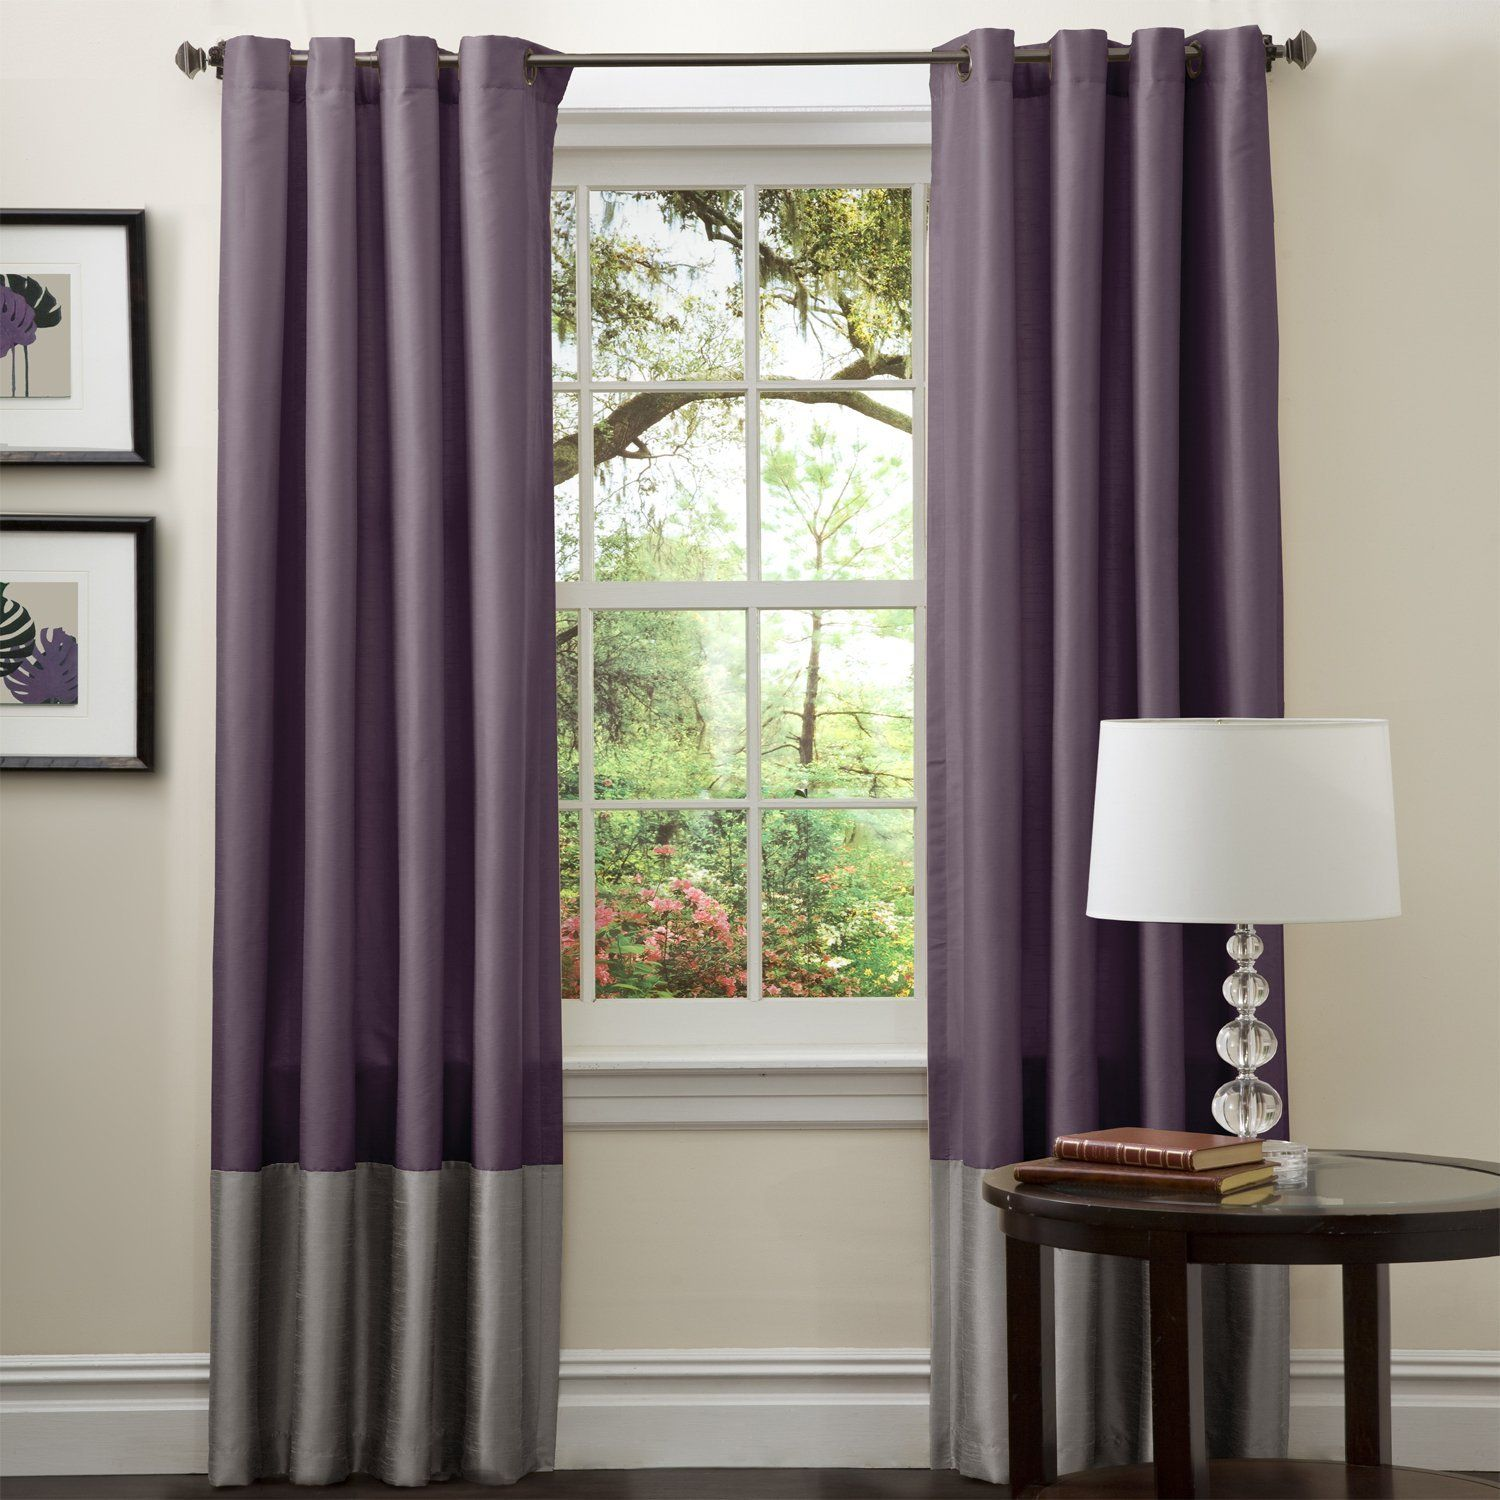 Brown bedroom curtain ideas - The Fantastic Warm Shades In Plum Curtains Http Draperyroomideas Com